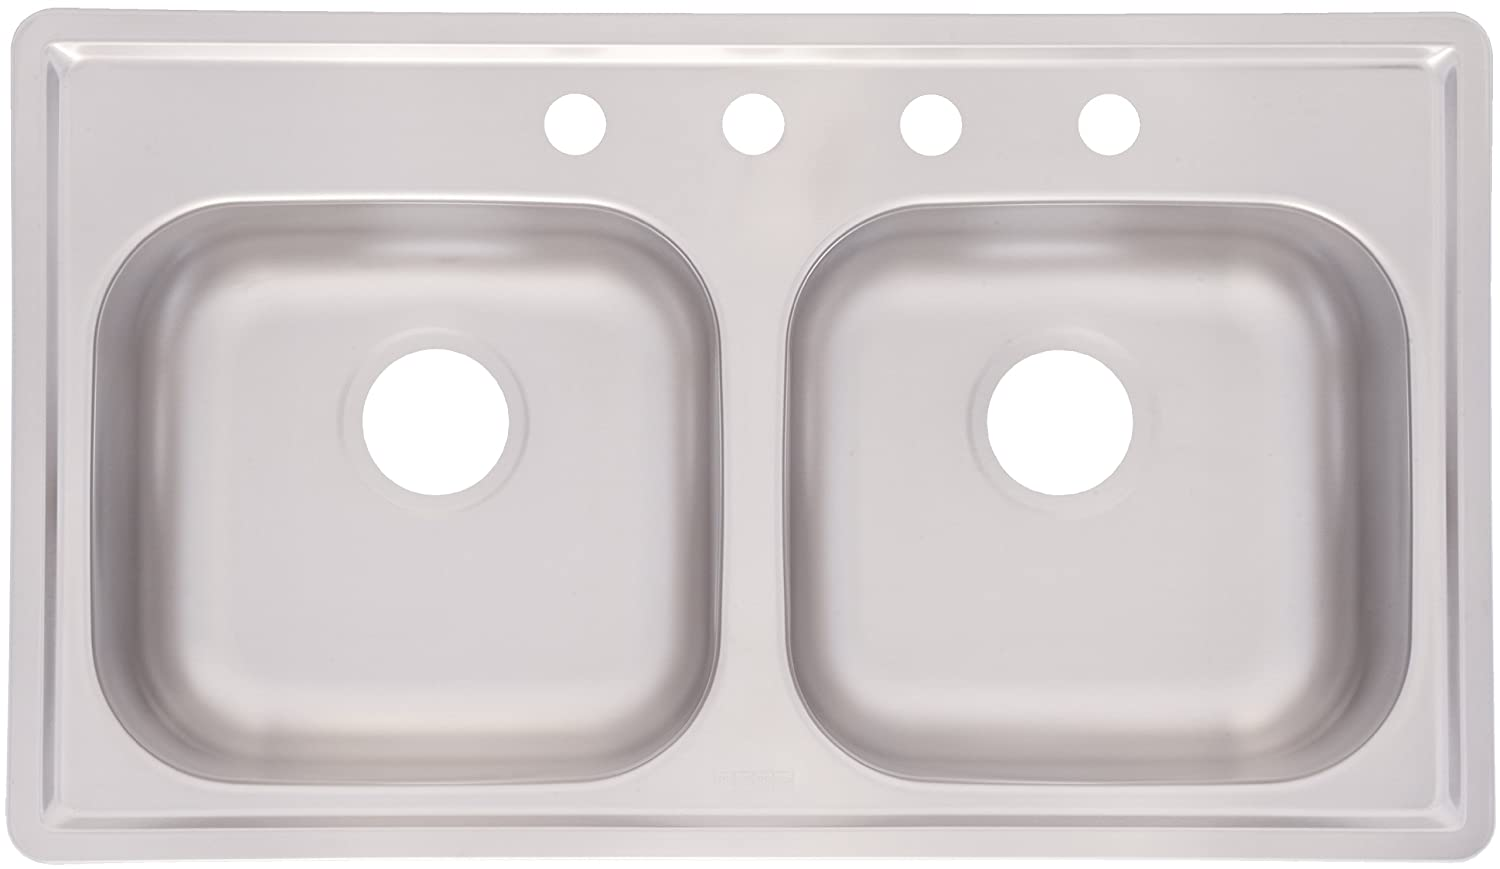 Kitchen Sink Top | Kindred Fmsb654nb Double Bowl Stainless Steel 33 X 19 Inch Top